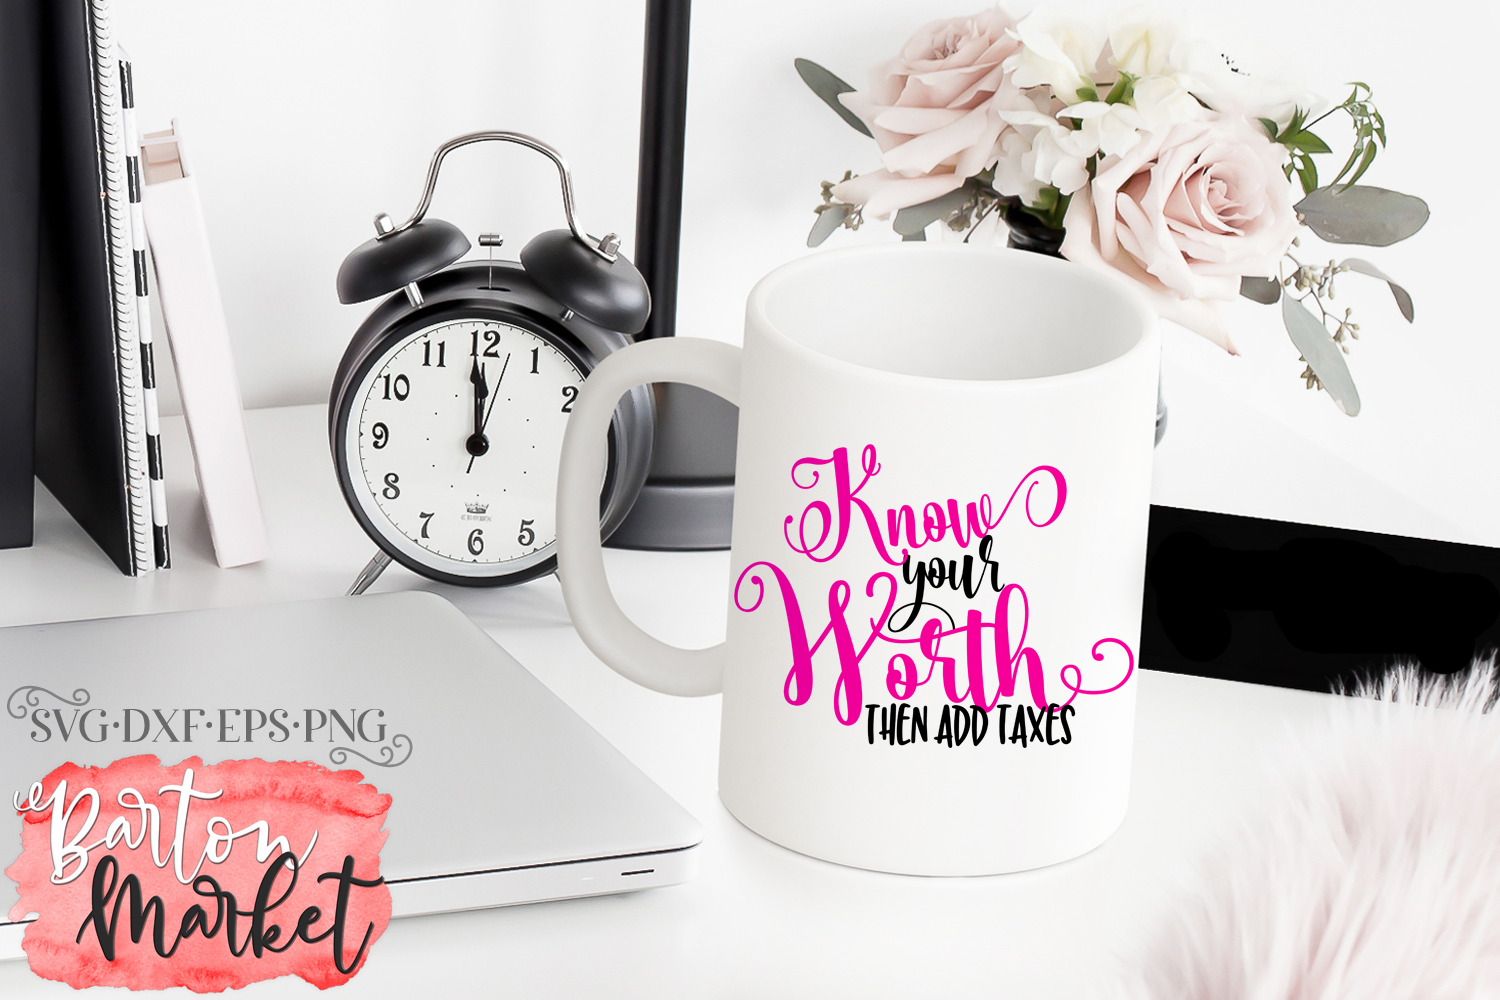 Know Your Worth Then Add Taxes SVG DXF EPS PNG example image 2